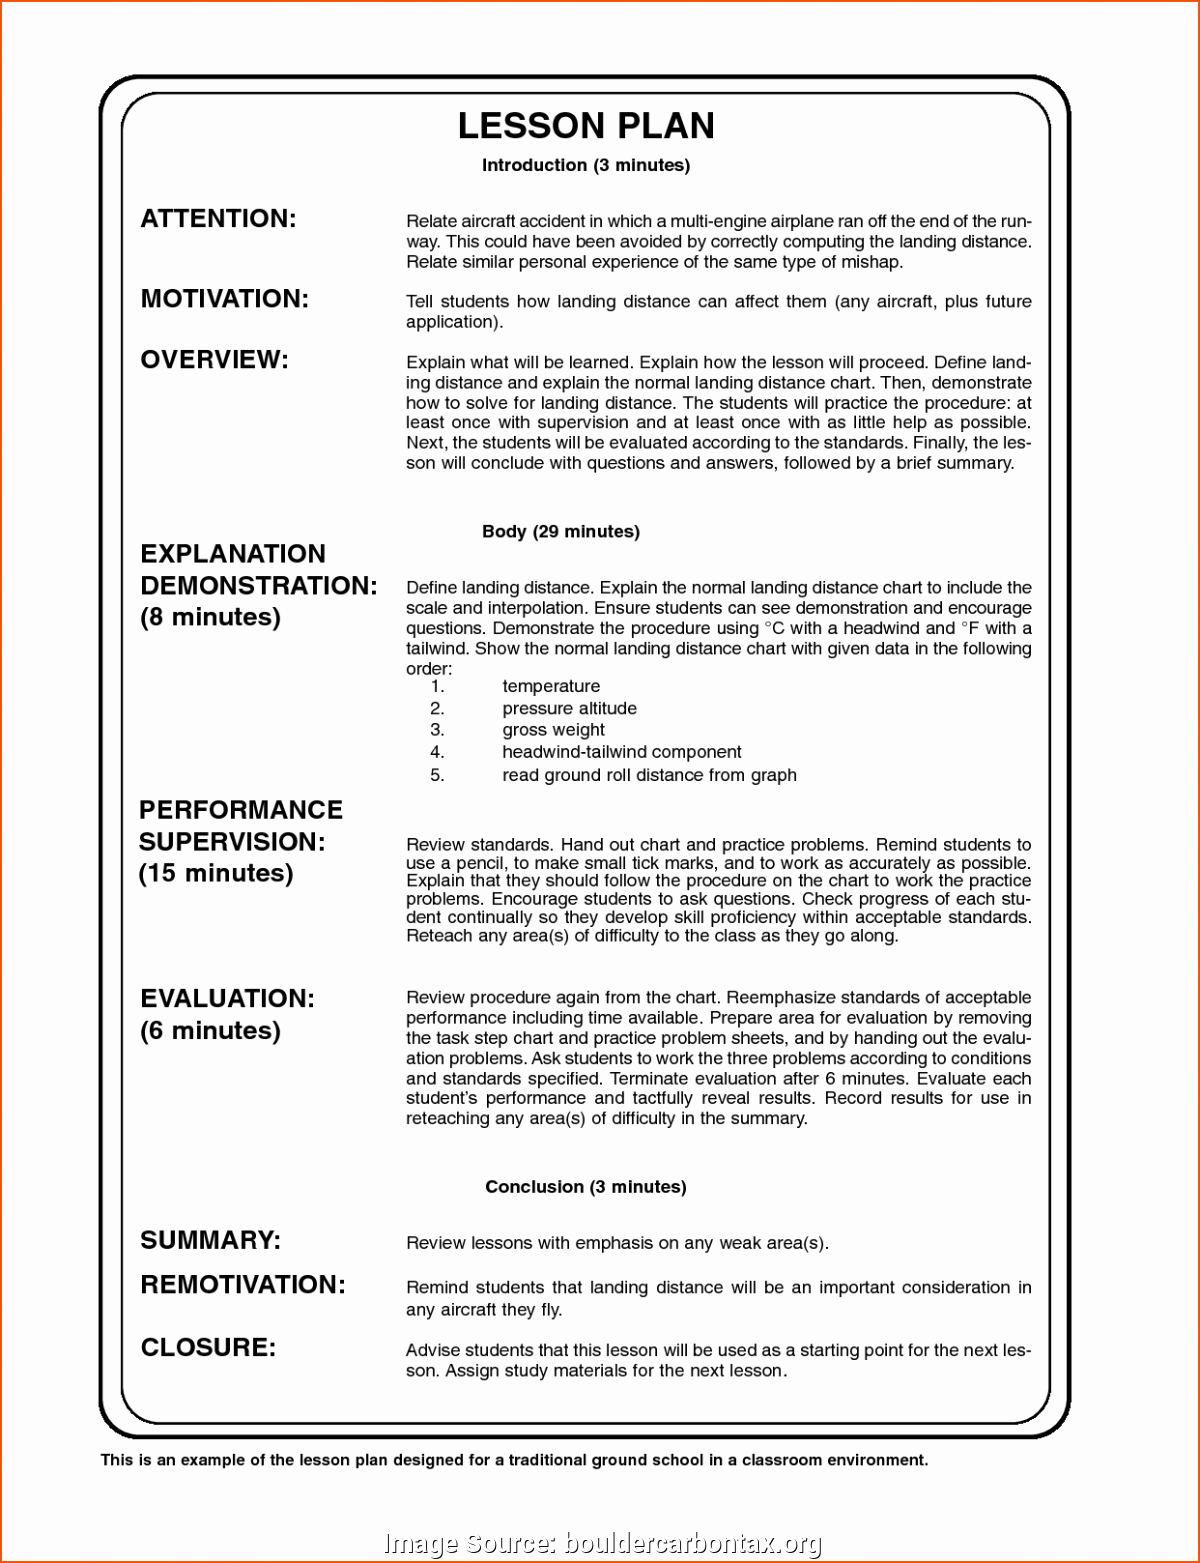 Daily Lesson Plan Template Pdf Luxury Excellent Sample Lesson Plan format Pdf Free Daily Lesson